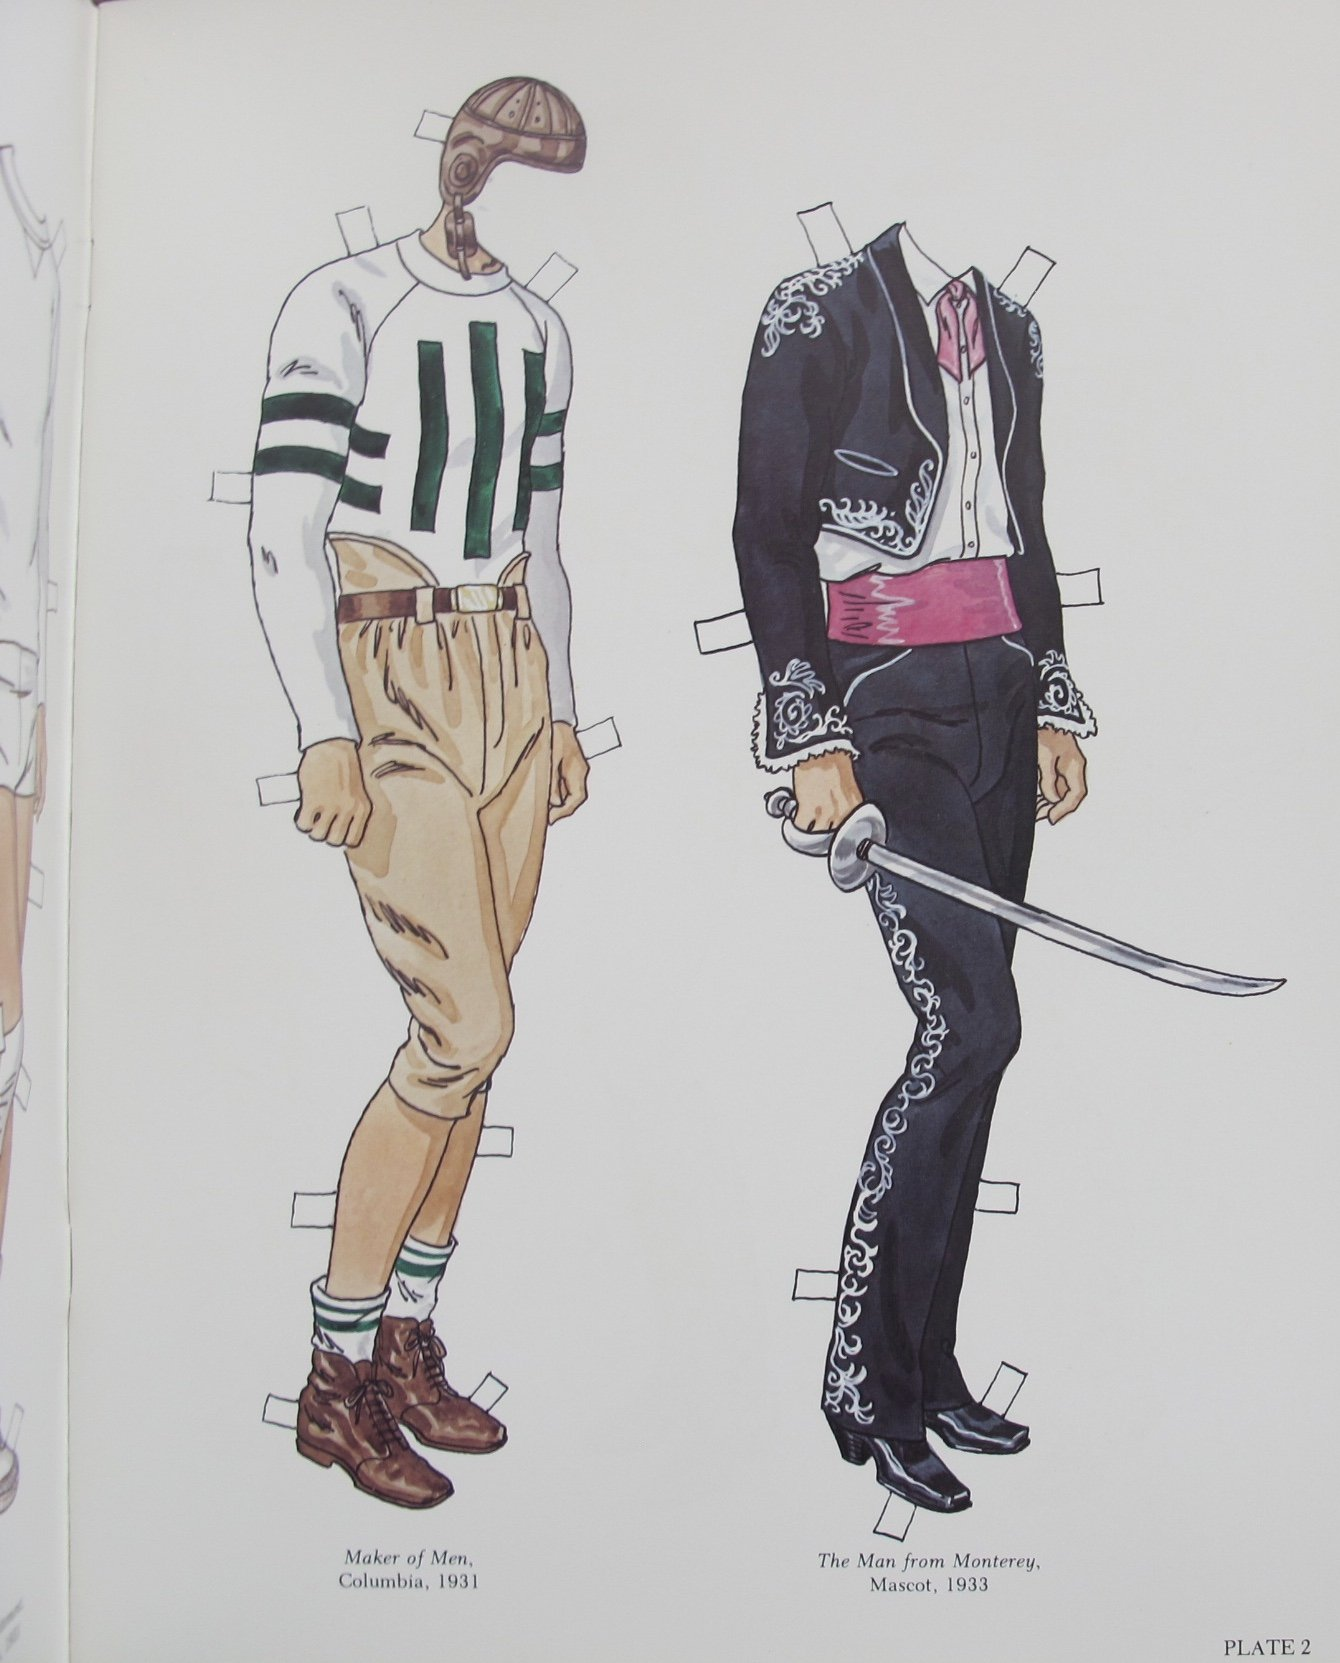 Tom Tierney JOHN WAYNE PAPER DOLLS Book (UNCUT) w 2 Card Stock DOLLS and 31 Card Stock COSTUMES (1980) by Tom Tierney, Dover Publications (Image #2)